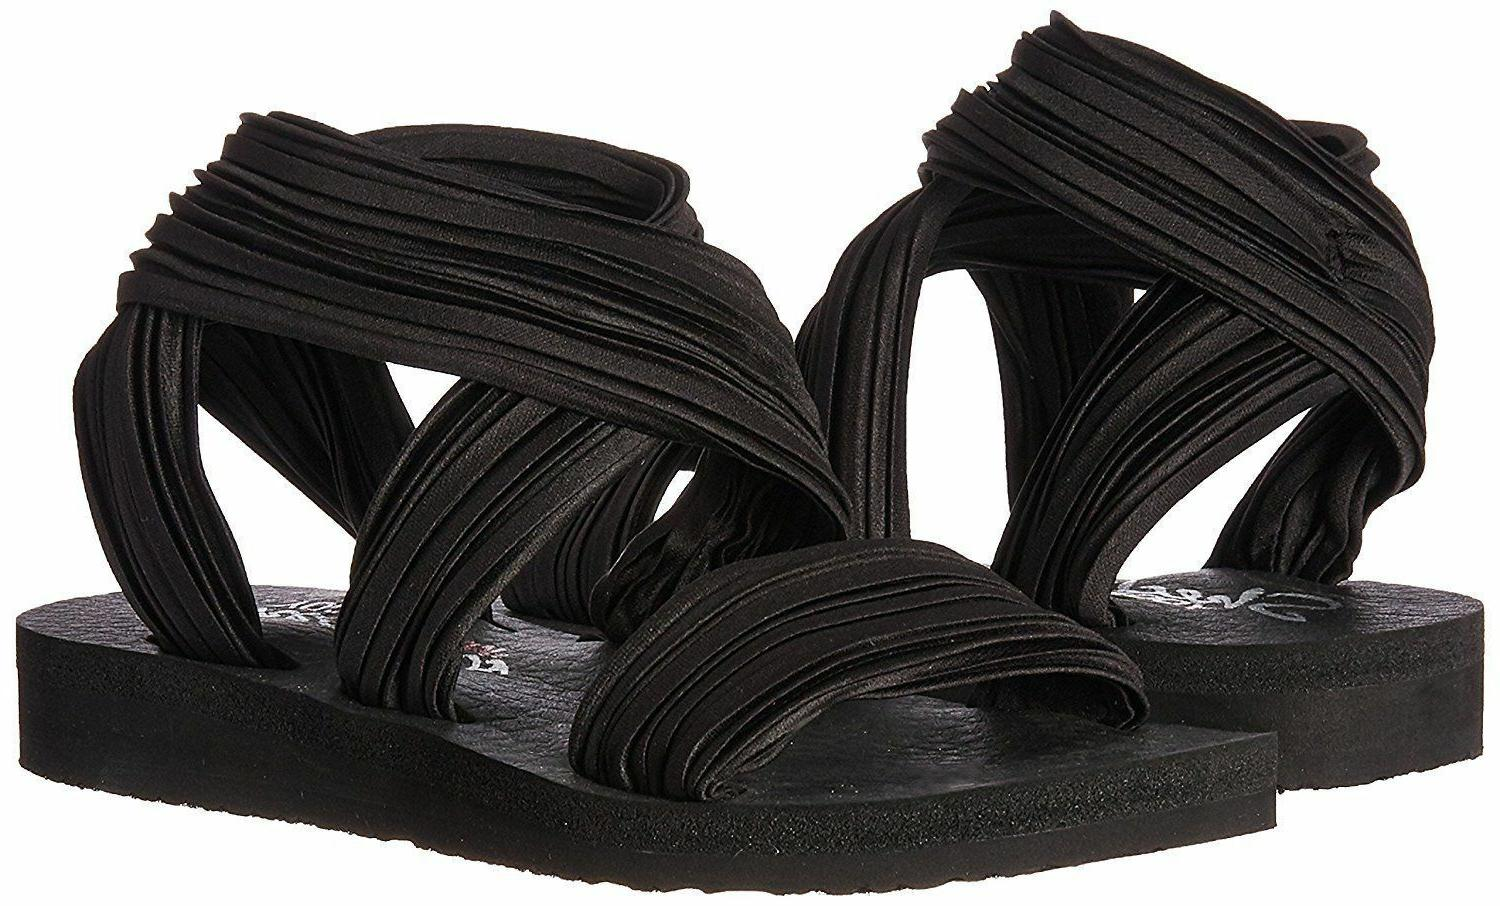 Skechers Cali Women's Yoga Sandal